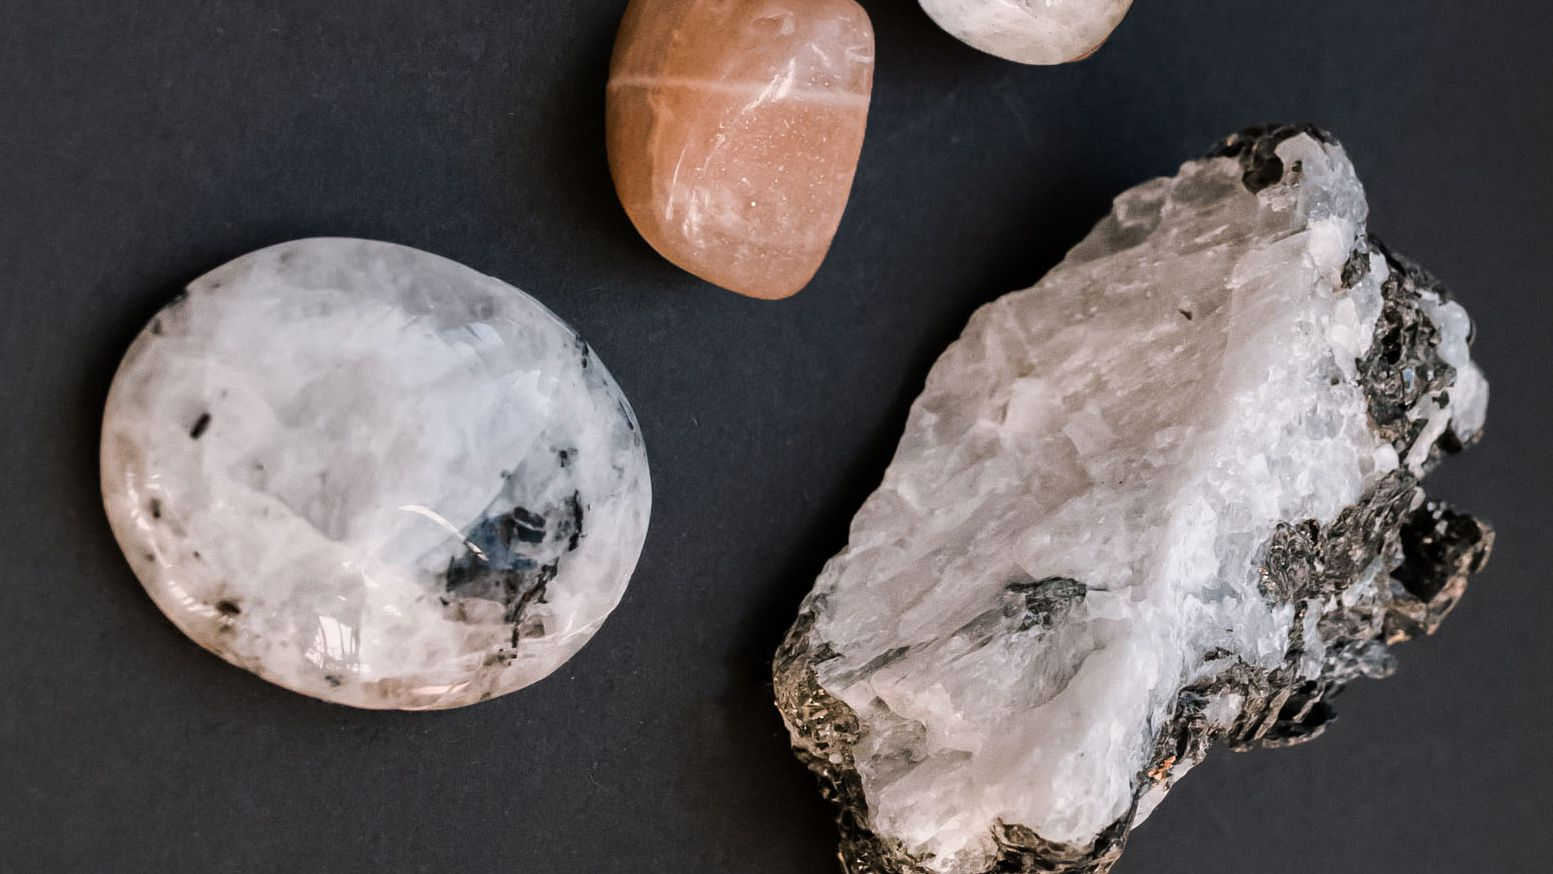 Moonstone Meanings, Properties and Uses